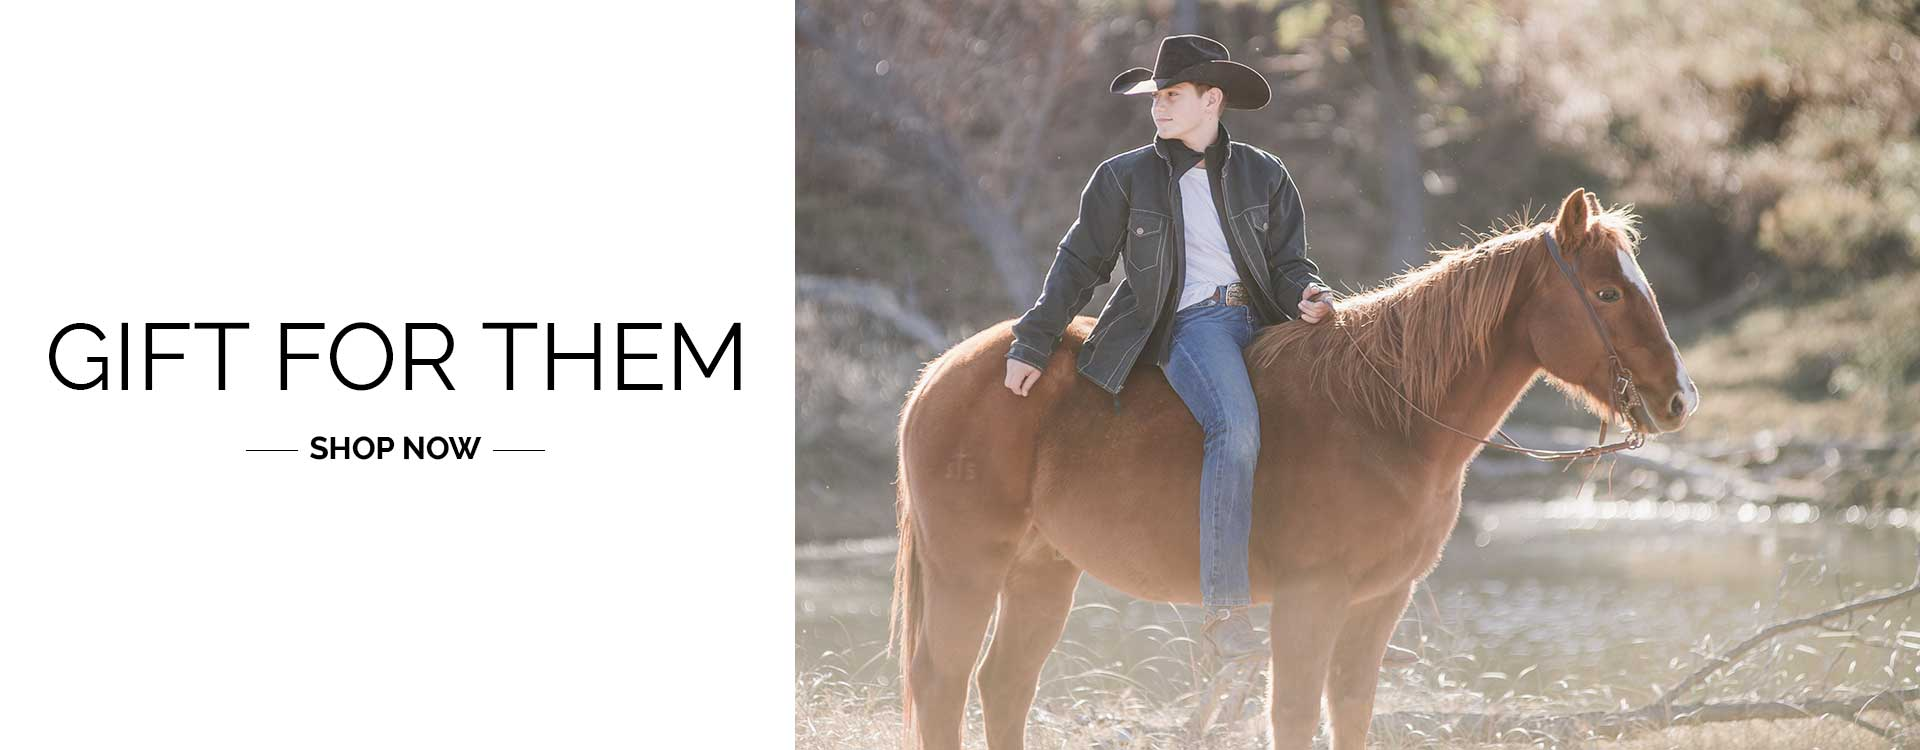 Gifts for Them Shop Now - 2020 STS Ranchwear Black Friday Cyber Monday Sales